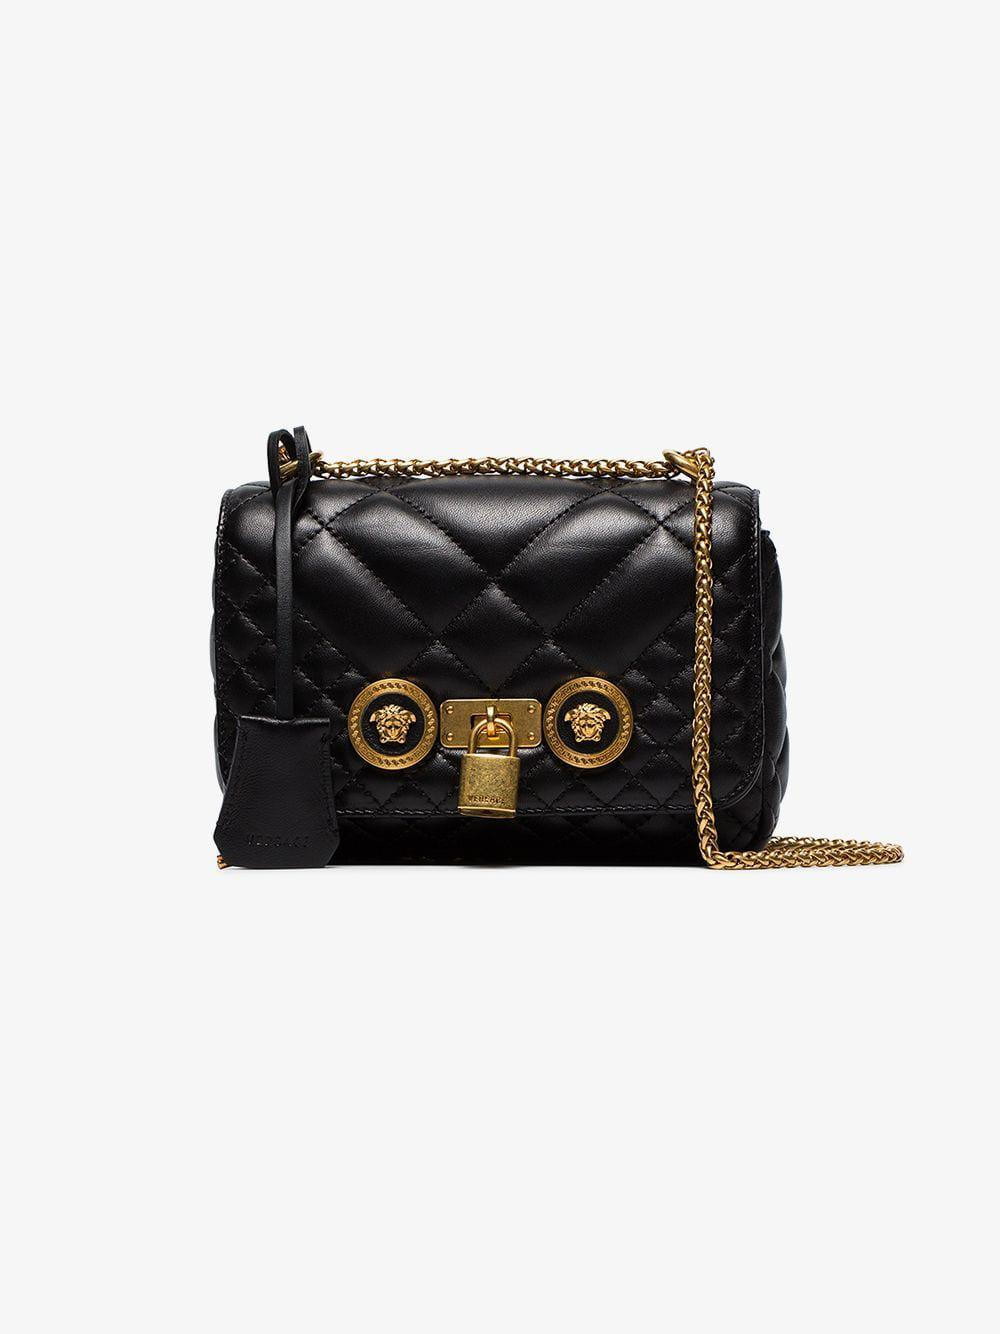 a0399fedb921 Lyst - Versace Black Small Quilted Leather Shoulder Bag in Black